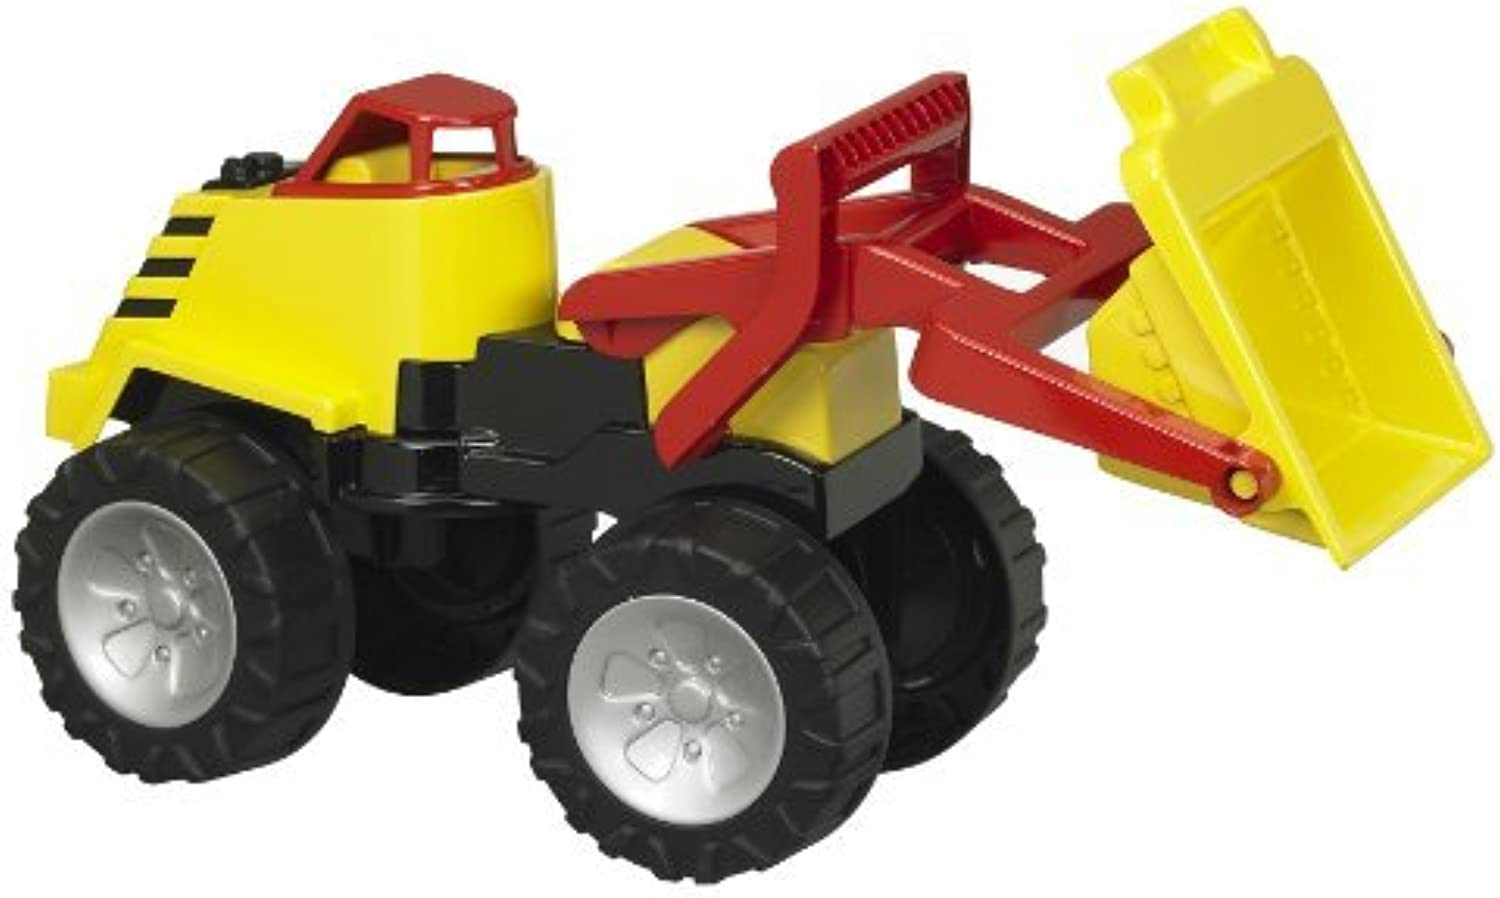 American Plastic Toy Mega Construction Set by American Plastic Toy